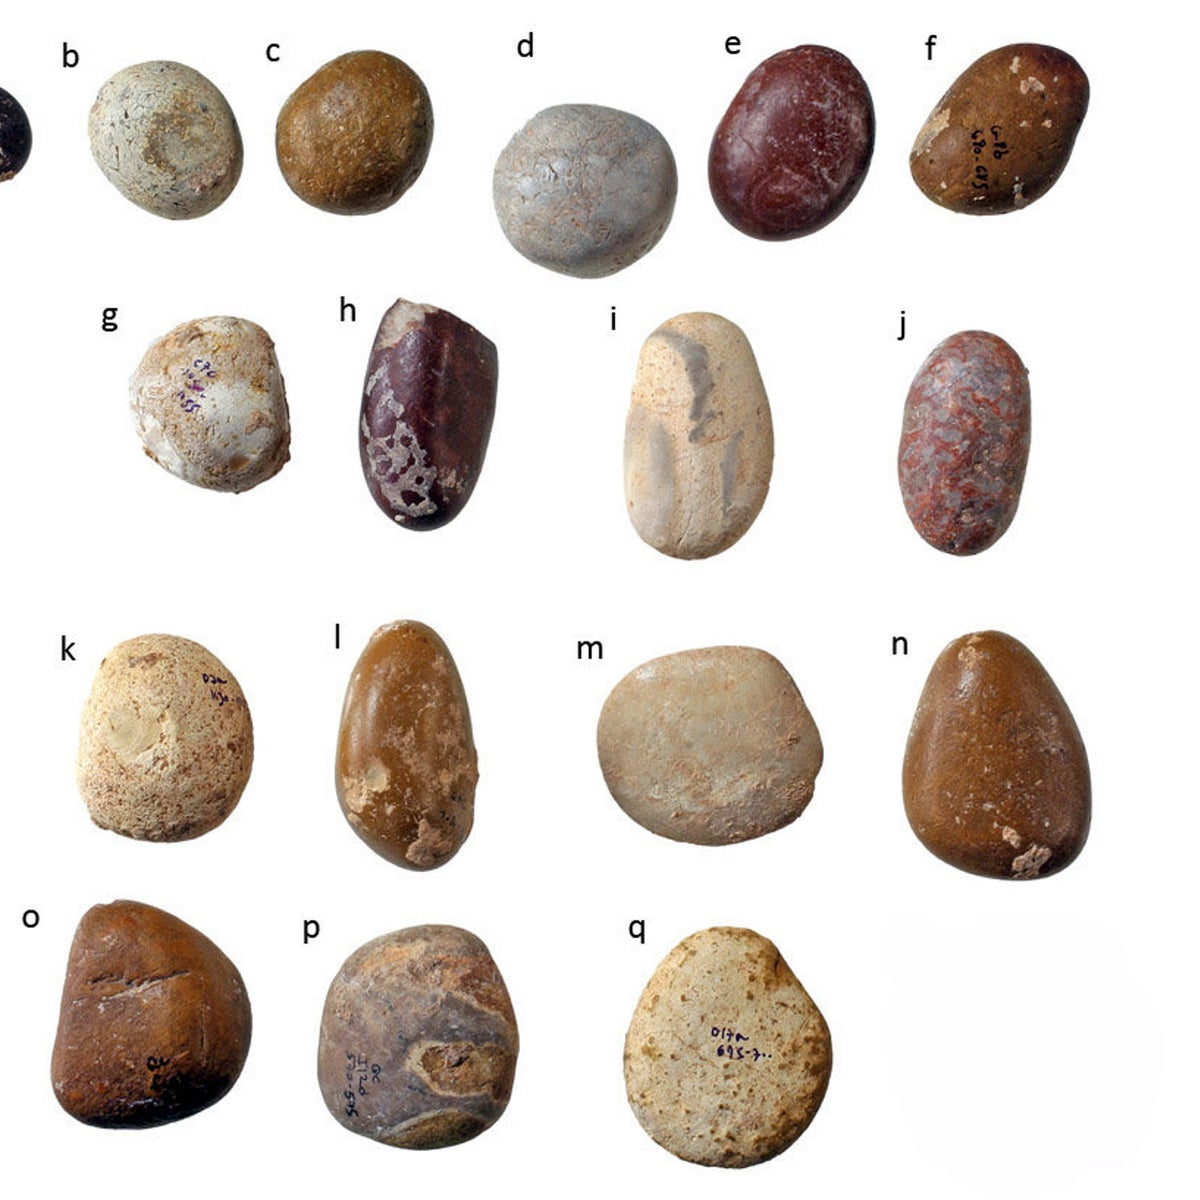 The collection of pebbles found at the prehistoric site of Qesem cave, central Israel